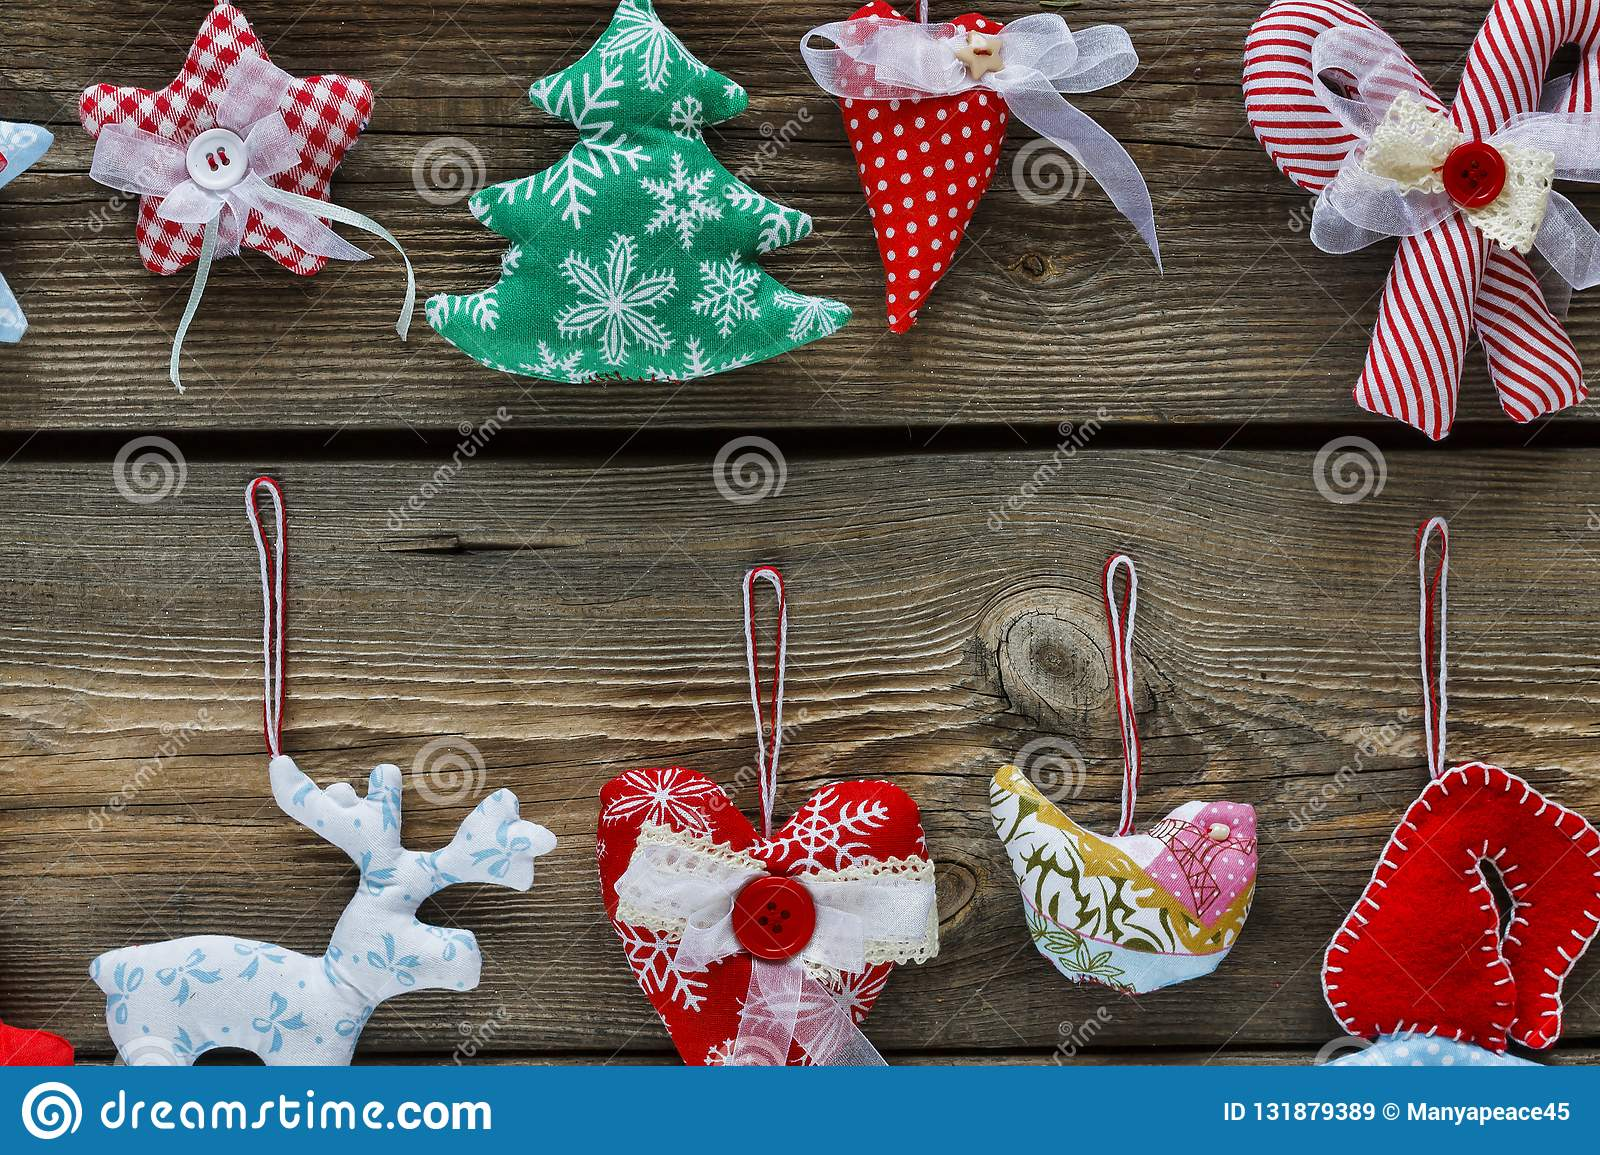 Newest Craft Ideas For Christmas 2020 Homemade Christmas Toys, Christmas Tree Decorations,2019,2020, W